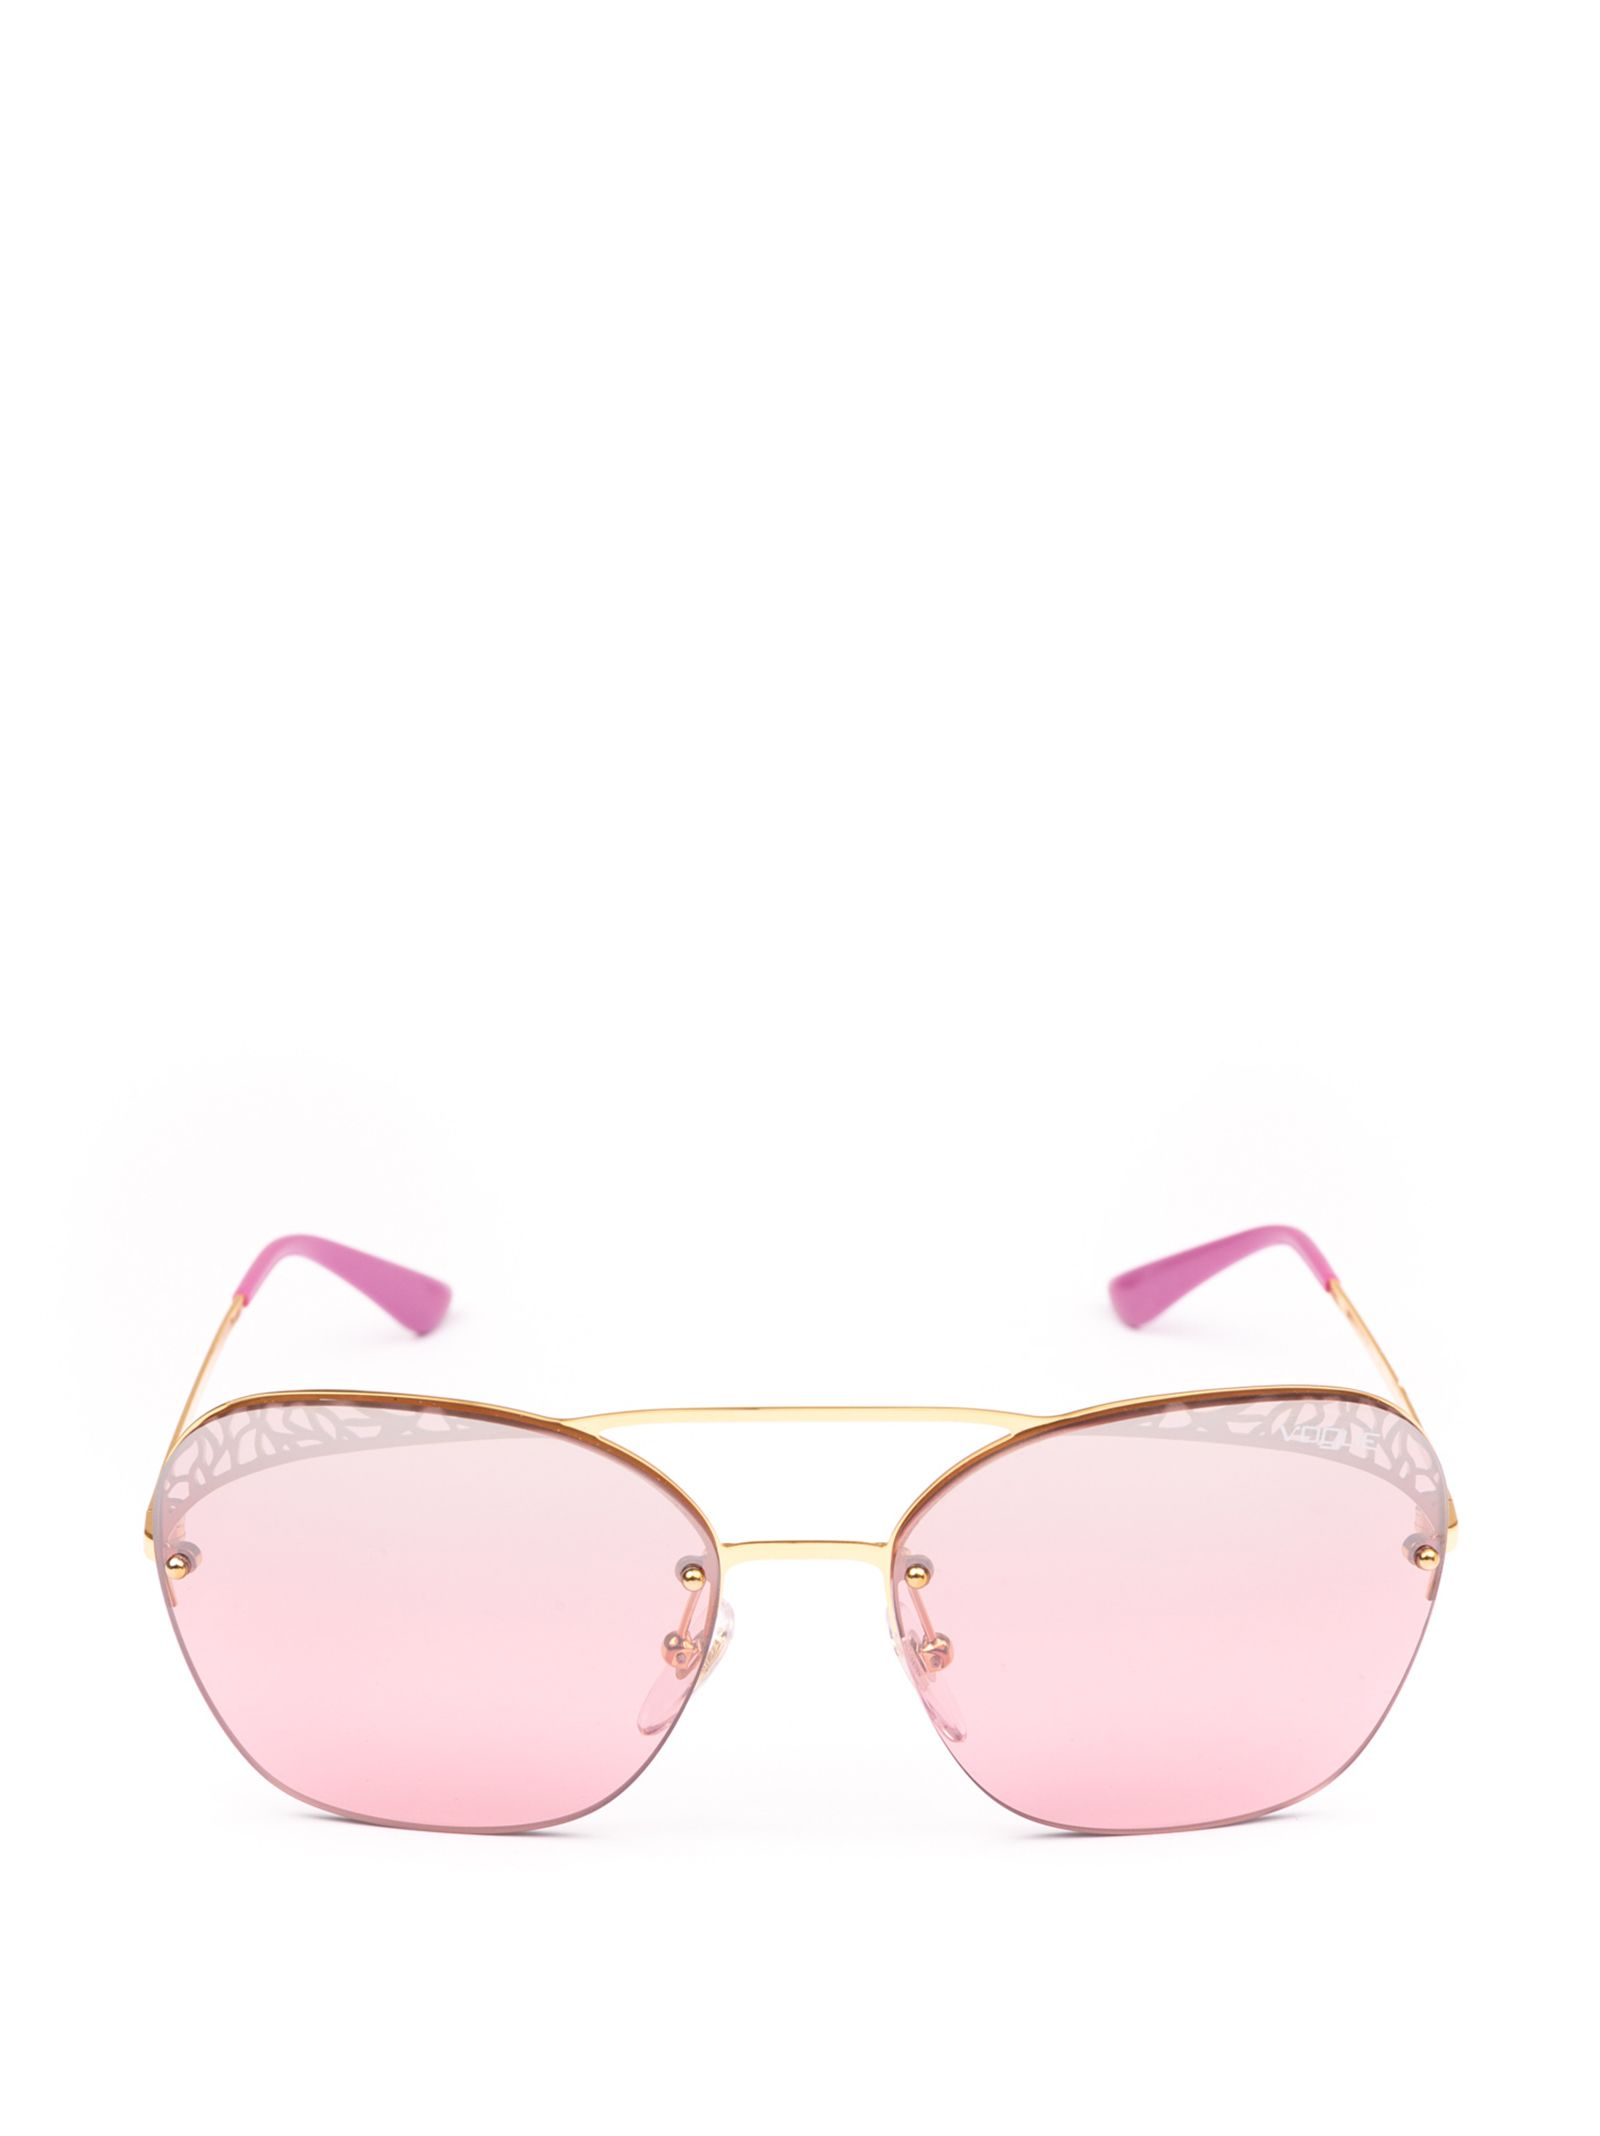 VOGUE EYEWEAR Sunglasses in 280/7A